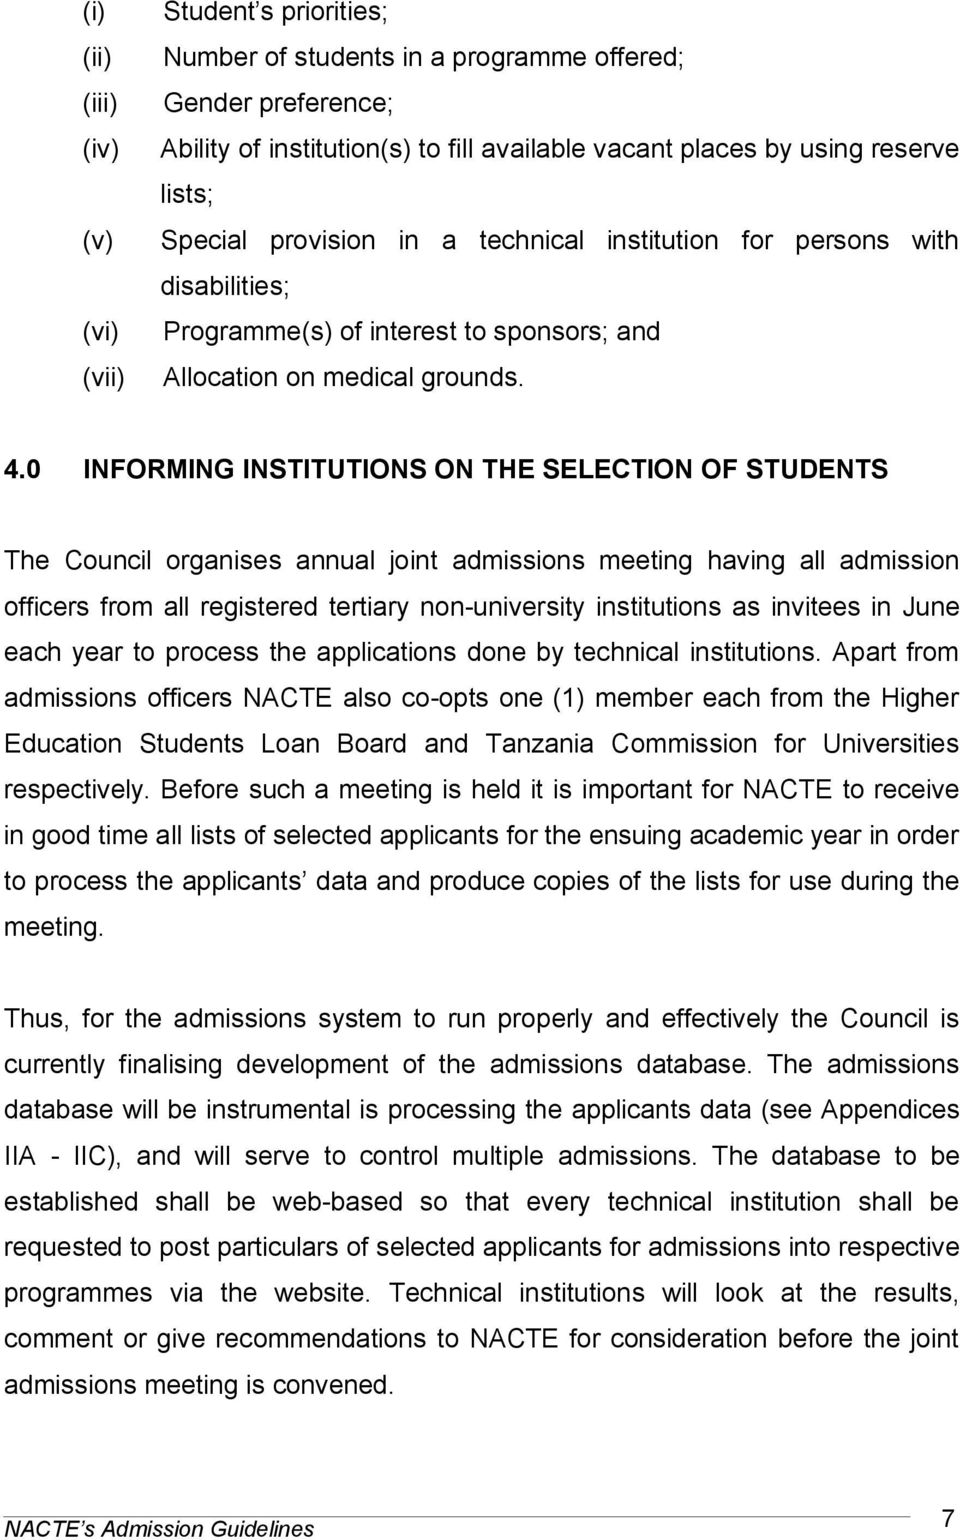 0 INFORMING INSTITUTIONS ON THE SELECTION OF STUDENTS The Council organises annual joint admissions meeting having all admission officers from all registered tertiary non-university institutions as